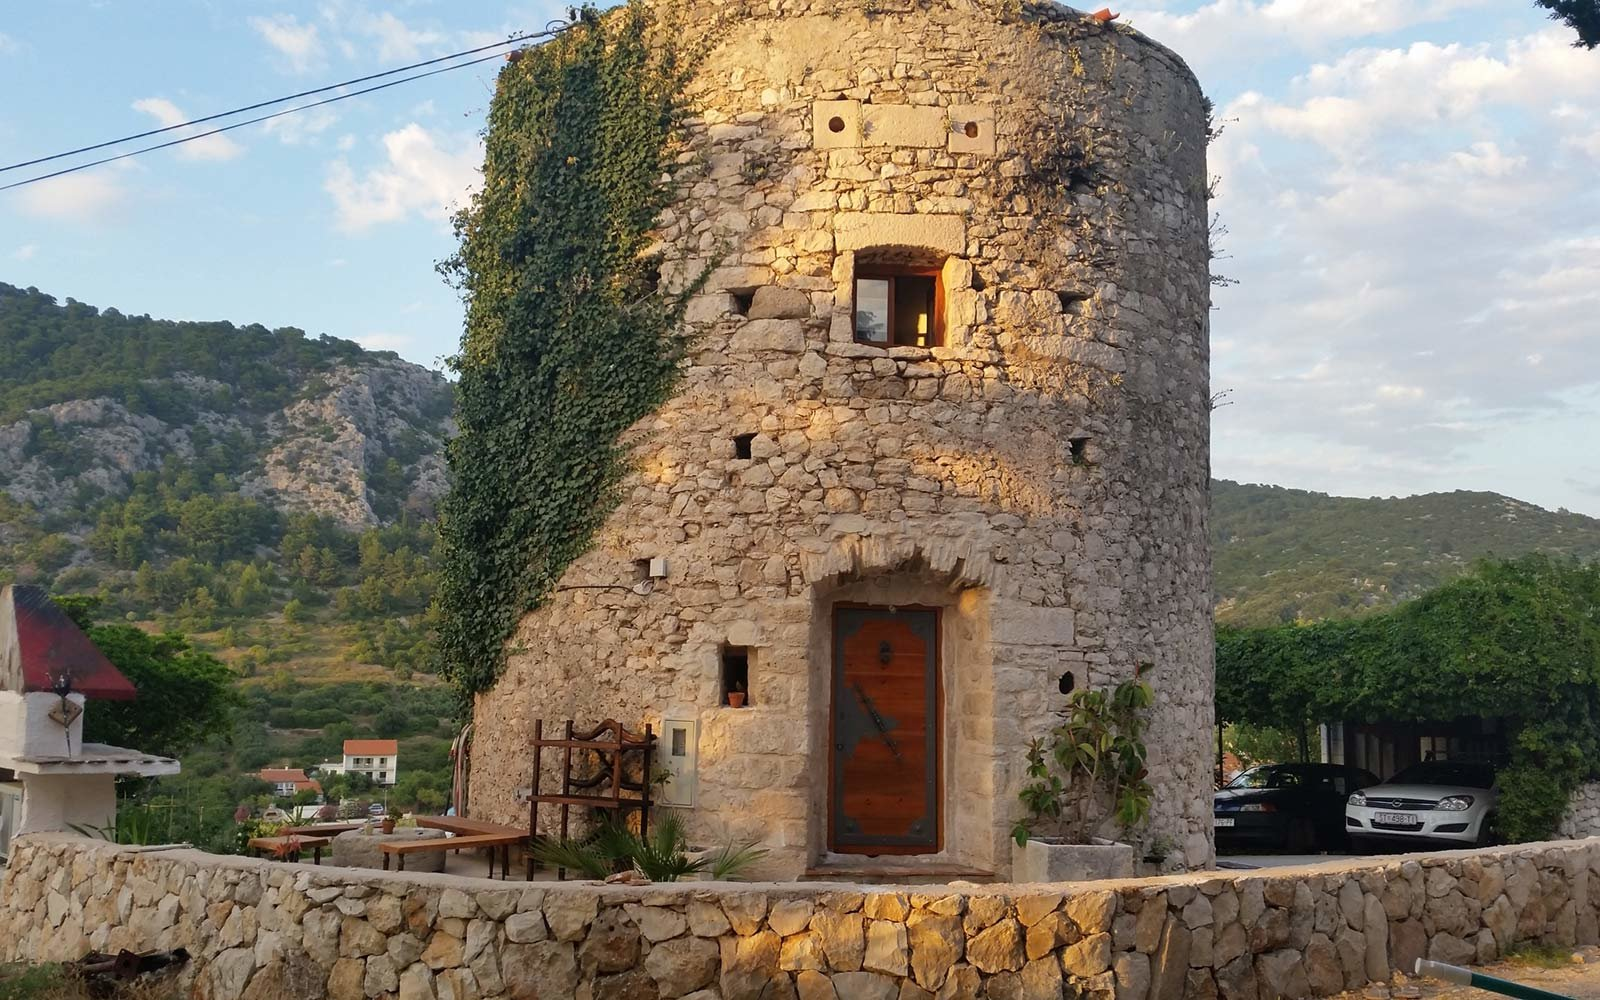 Hvar Old Tower in the Historical Center